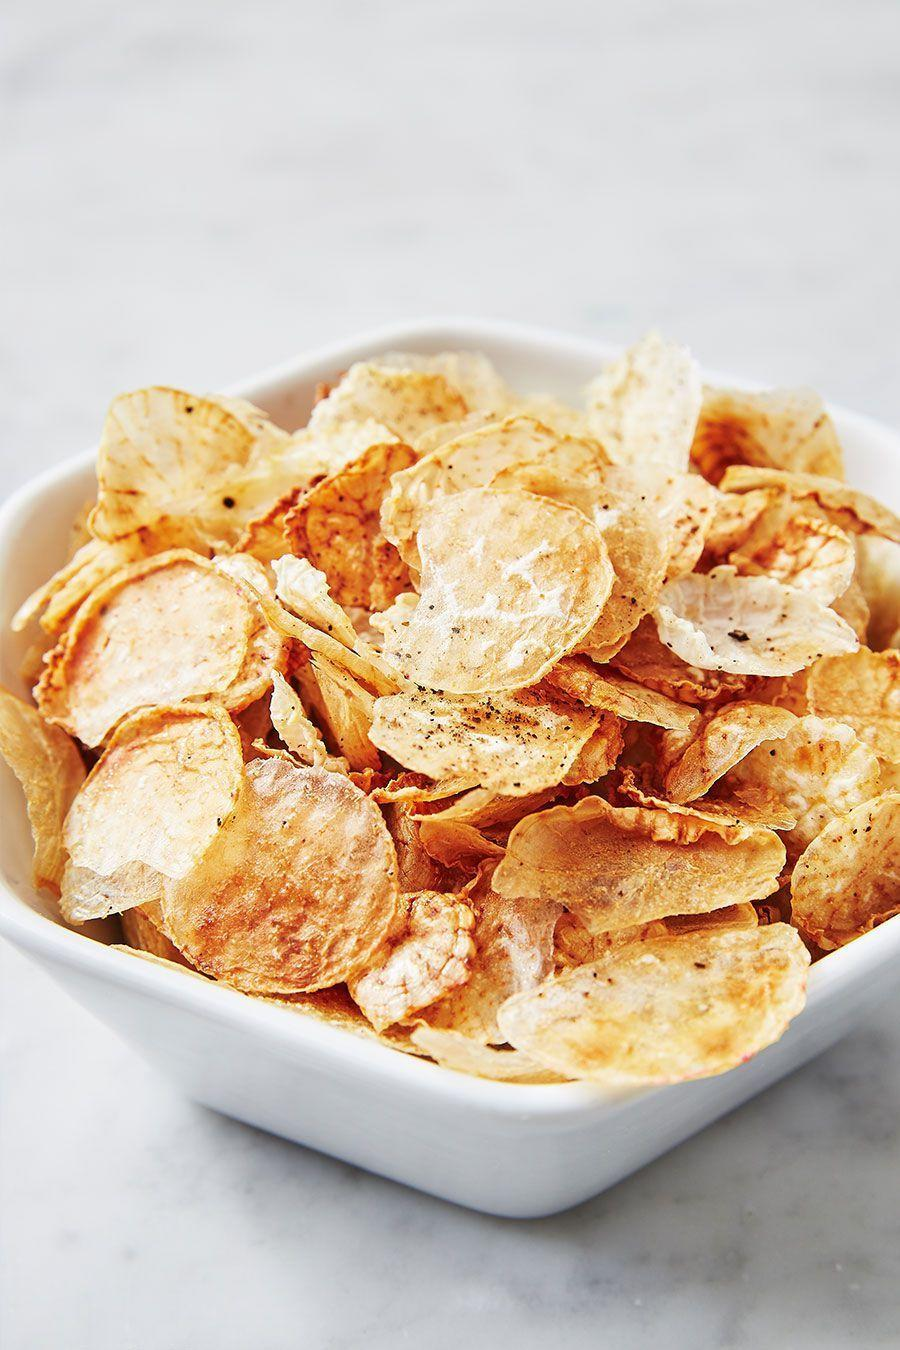 """<p>You'd never guess it, but these guys are made with...wait for it...radishes!!!</p><p>Get the recipe from <a href=""""https://www.delish.com/cooking/recipe-ideas/a25801977/fauxtato-chips-recipe/"""" rel=""""nofollow noopener"""" target=""""_blank"""" data-ylk=""""slk:Delish"""" class=""""link rapid-noclick-resp"""">Delish</a>.</p>"""